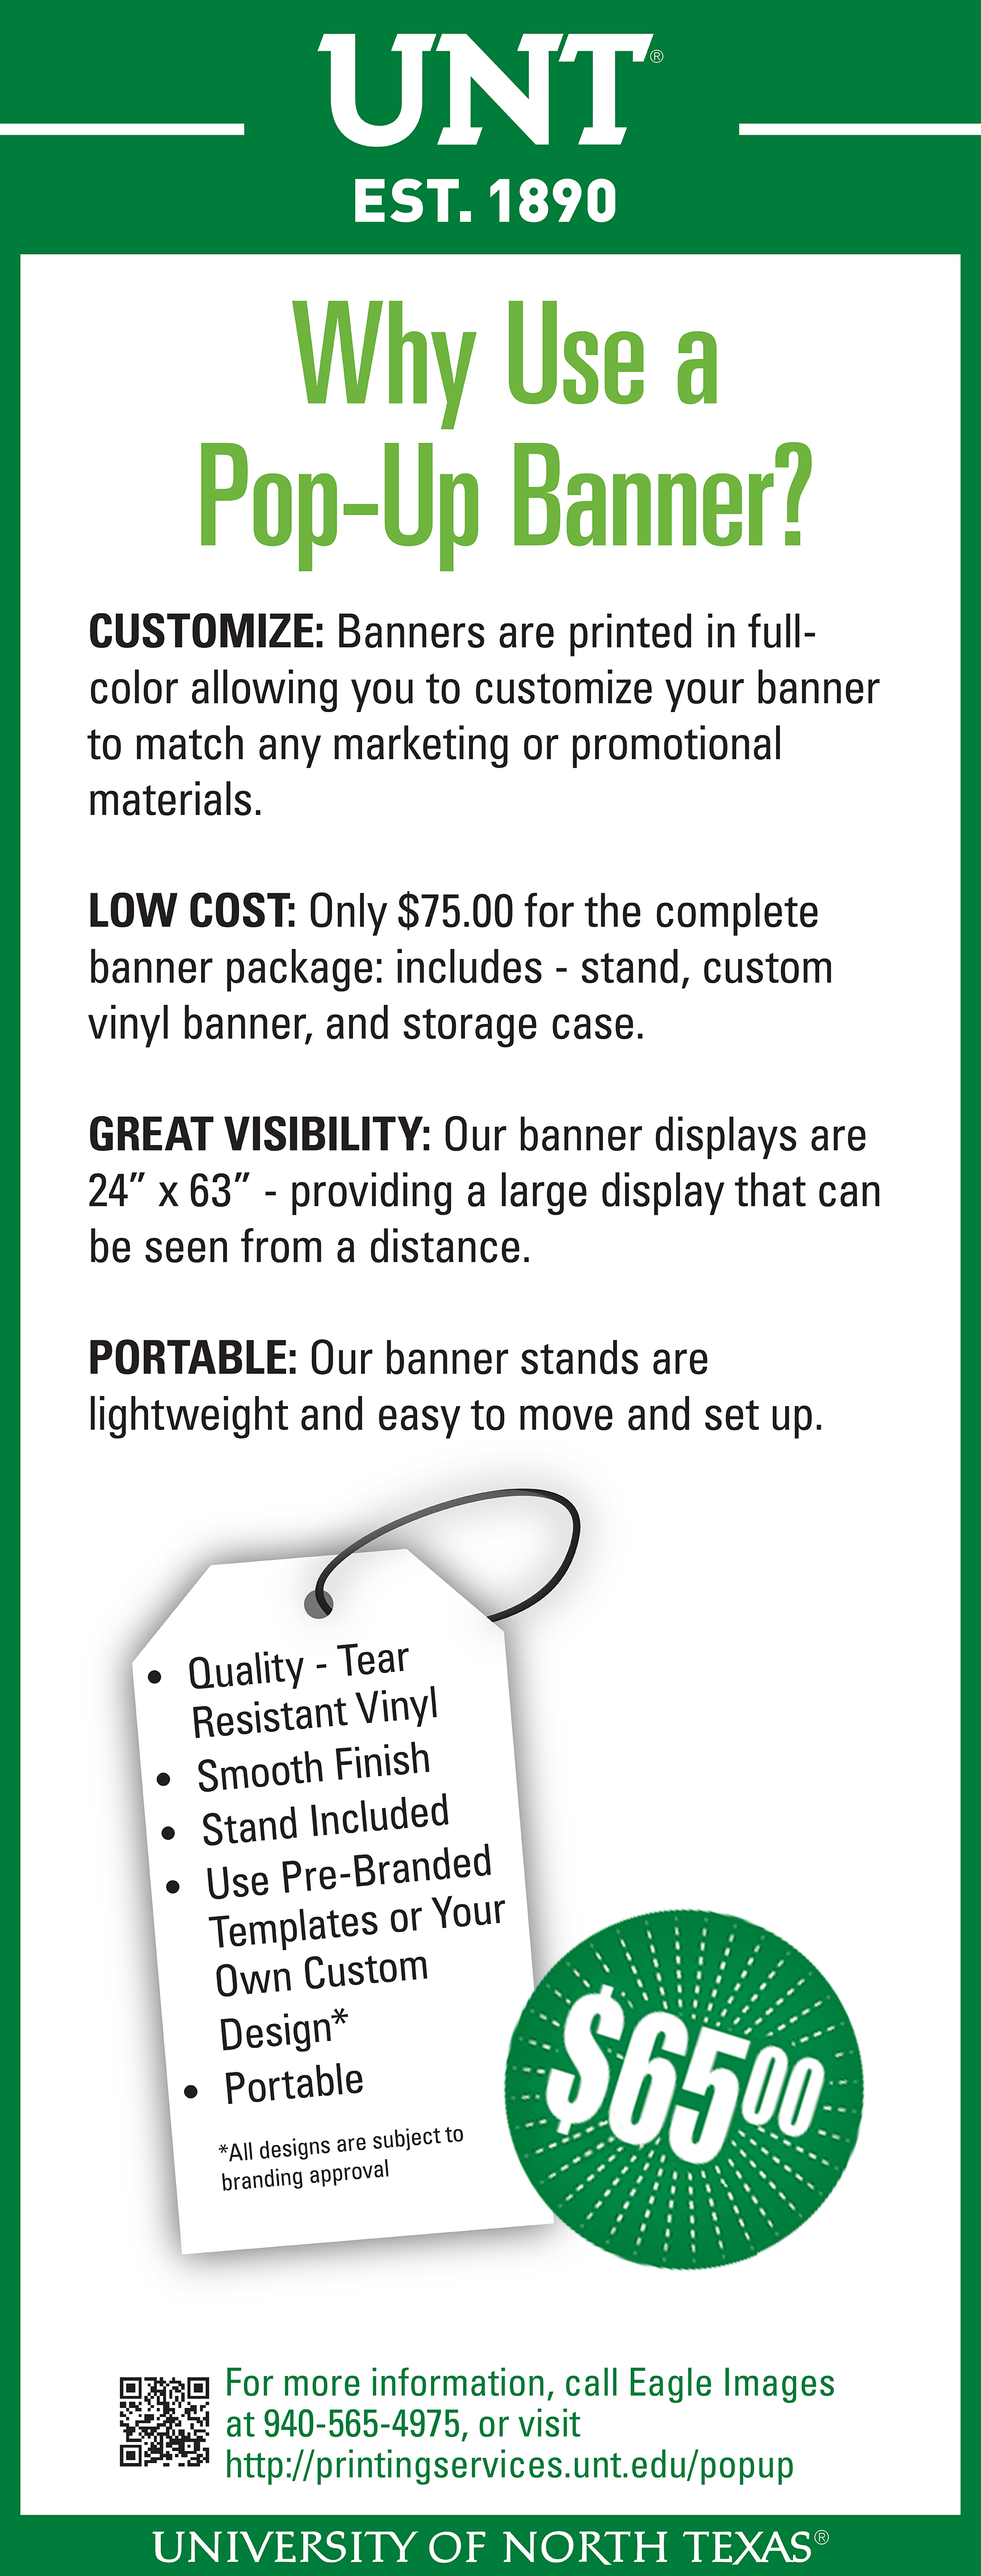 65 pop up banners for a limited time printing and distribution